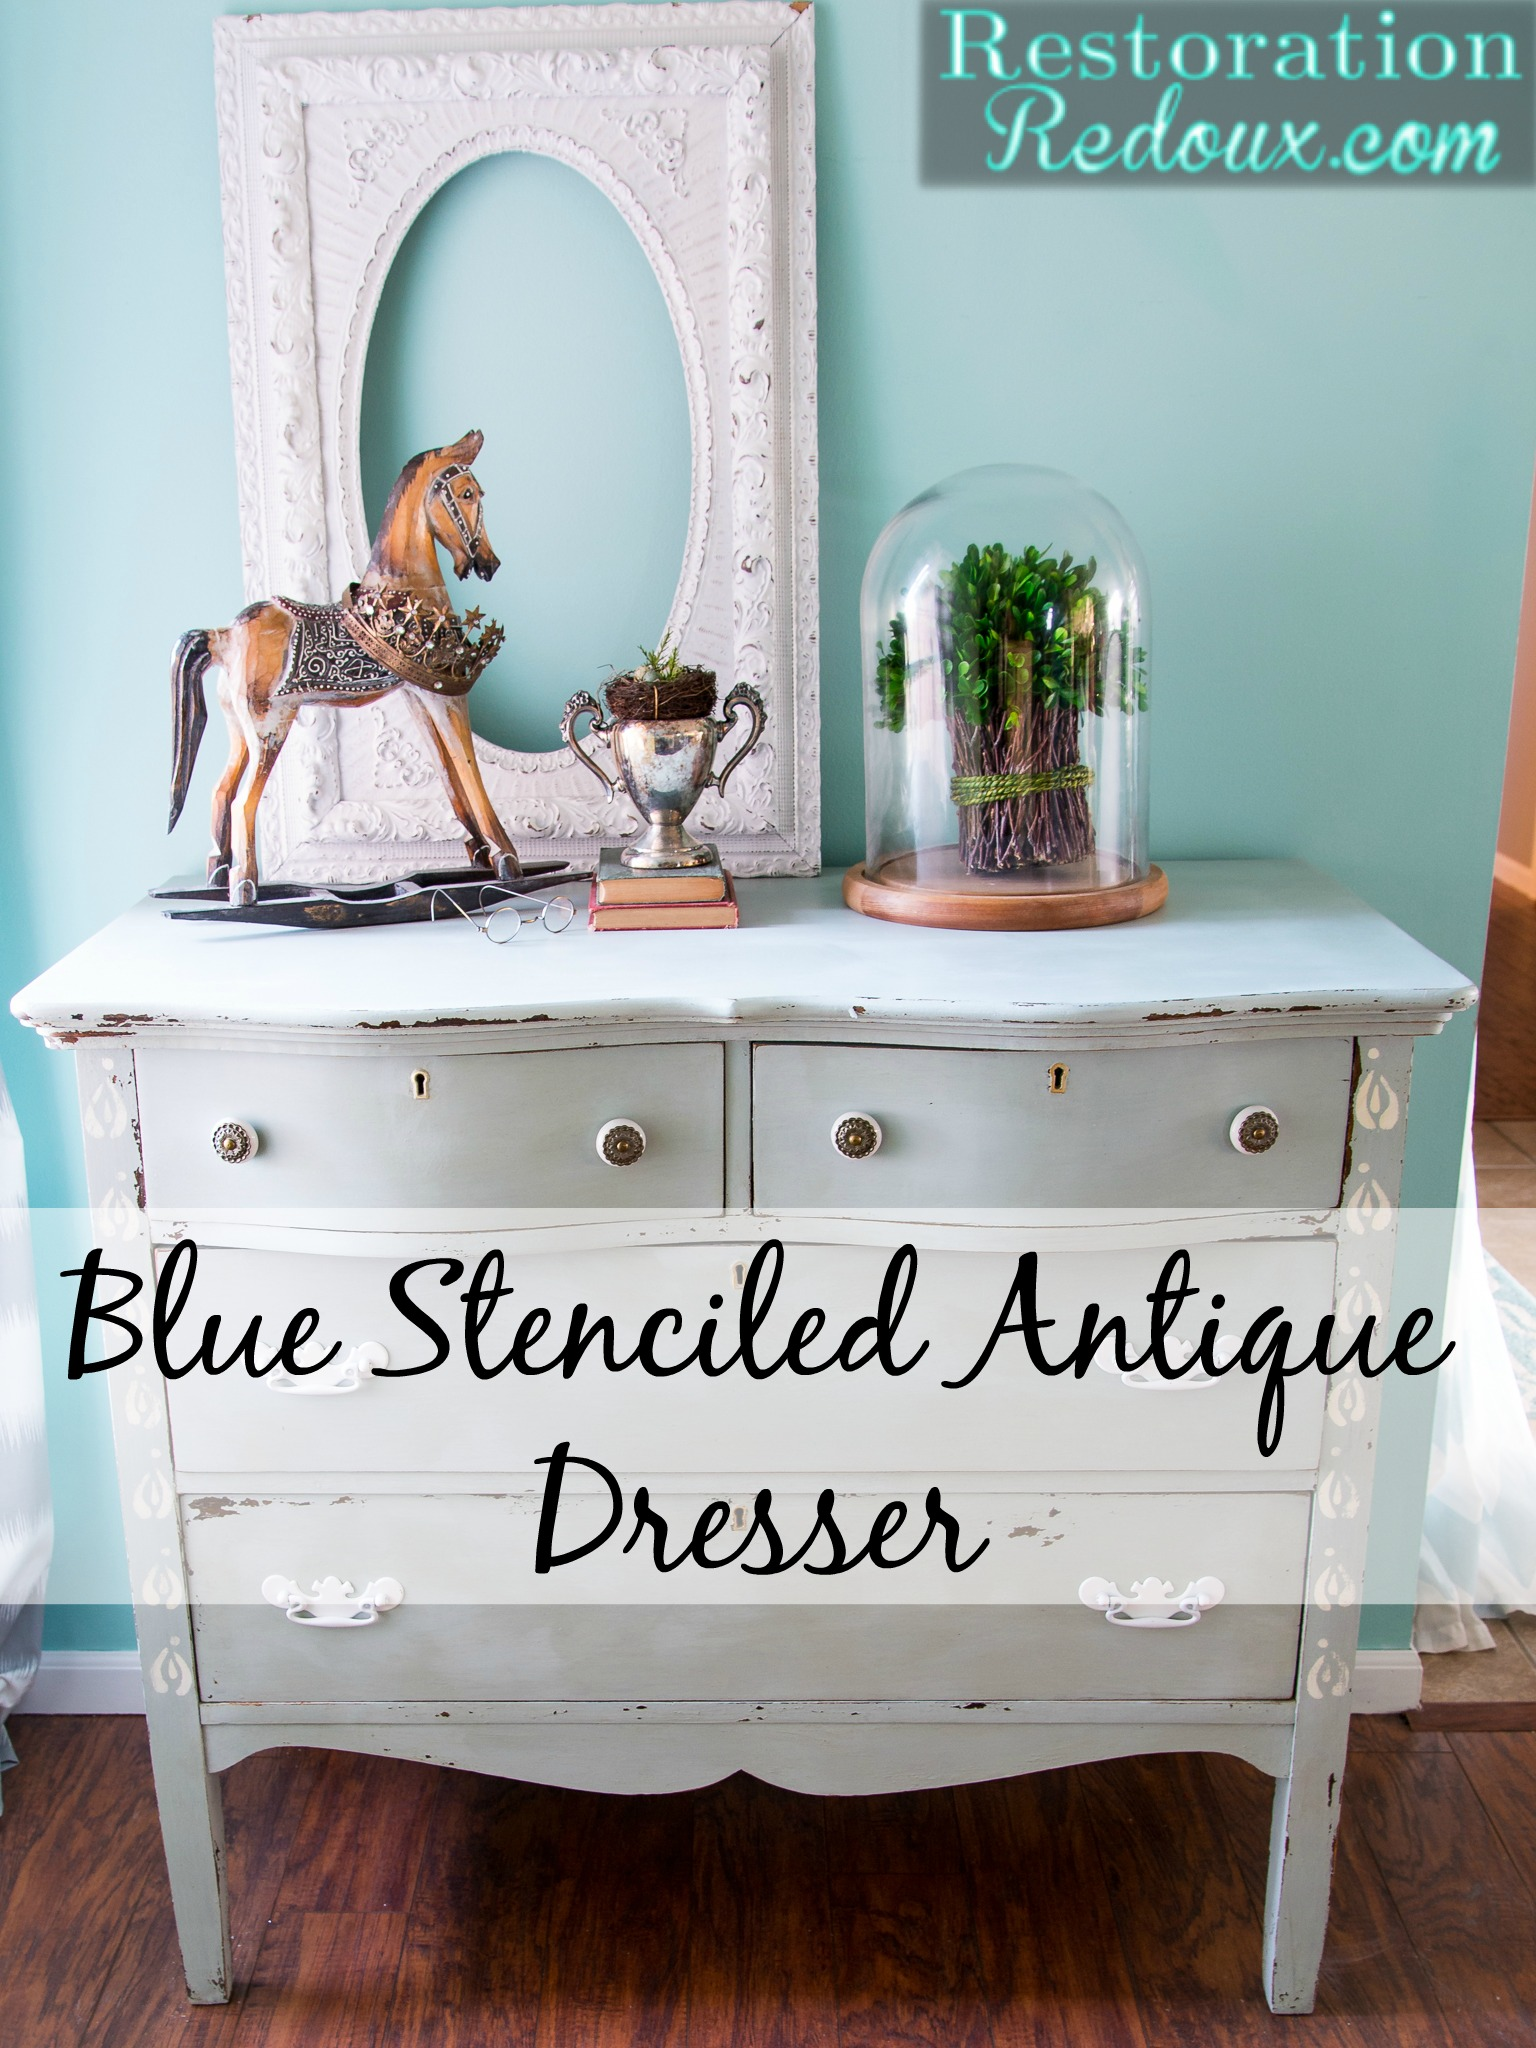 Blue Stenciled Antique Dresser